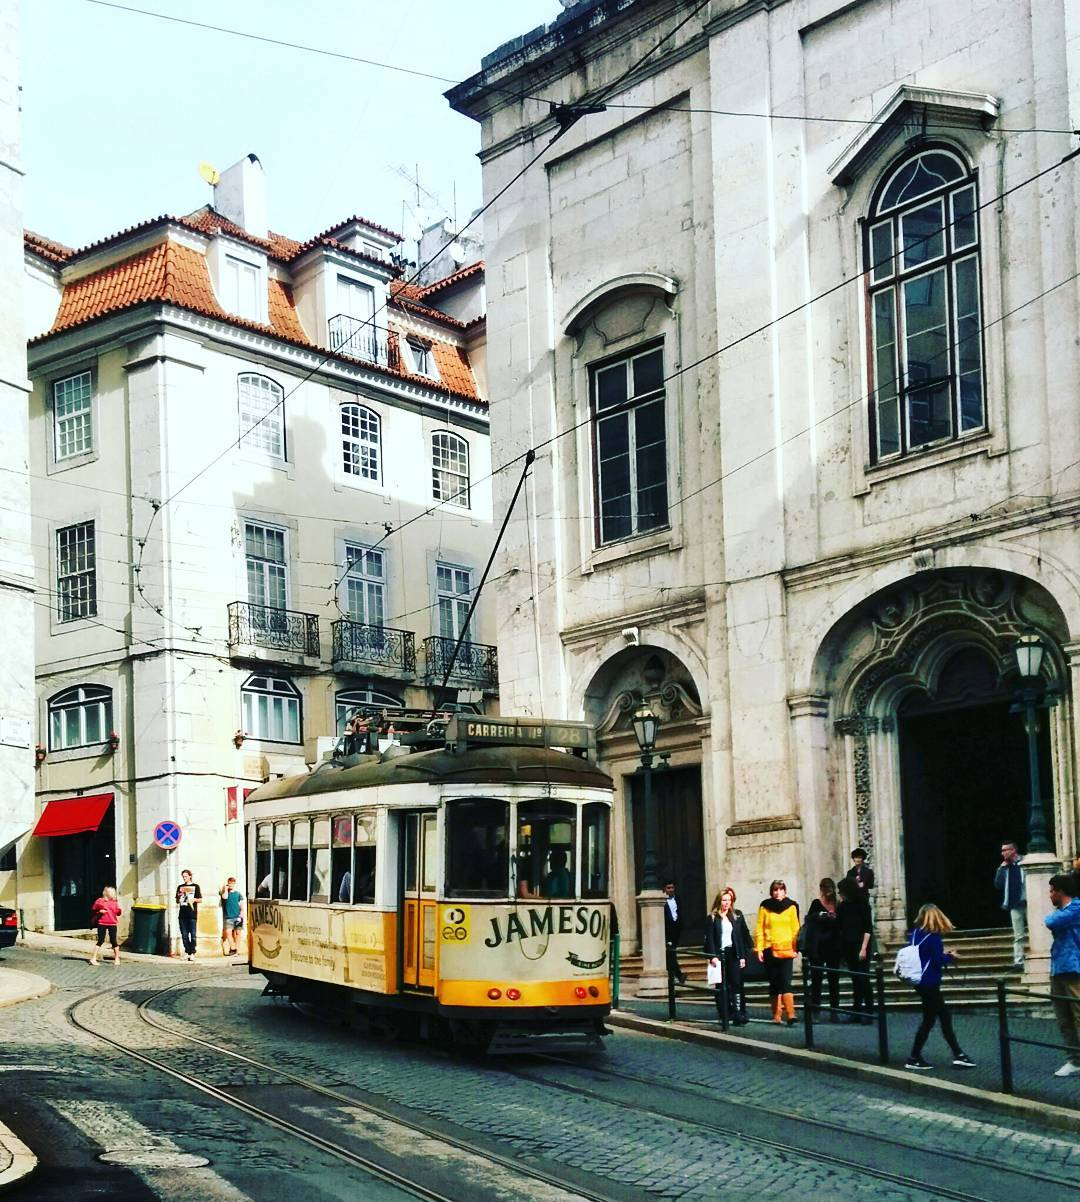 IMAGE: IG user @hermesymercurio / POST: Lisboa // PUBLISHED: 10.29.16